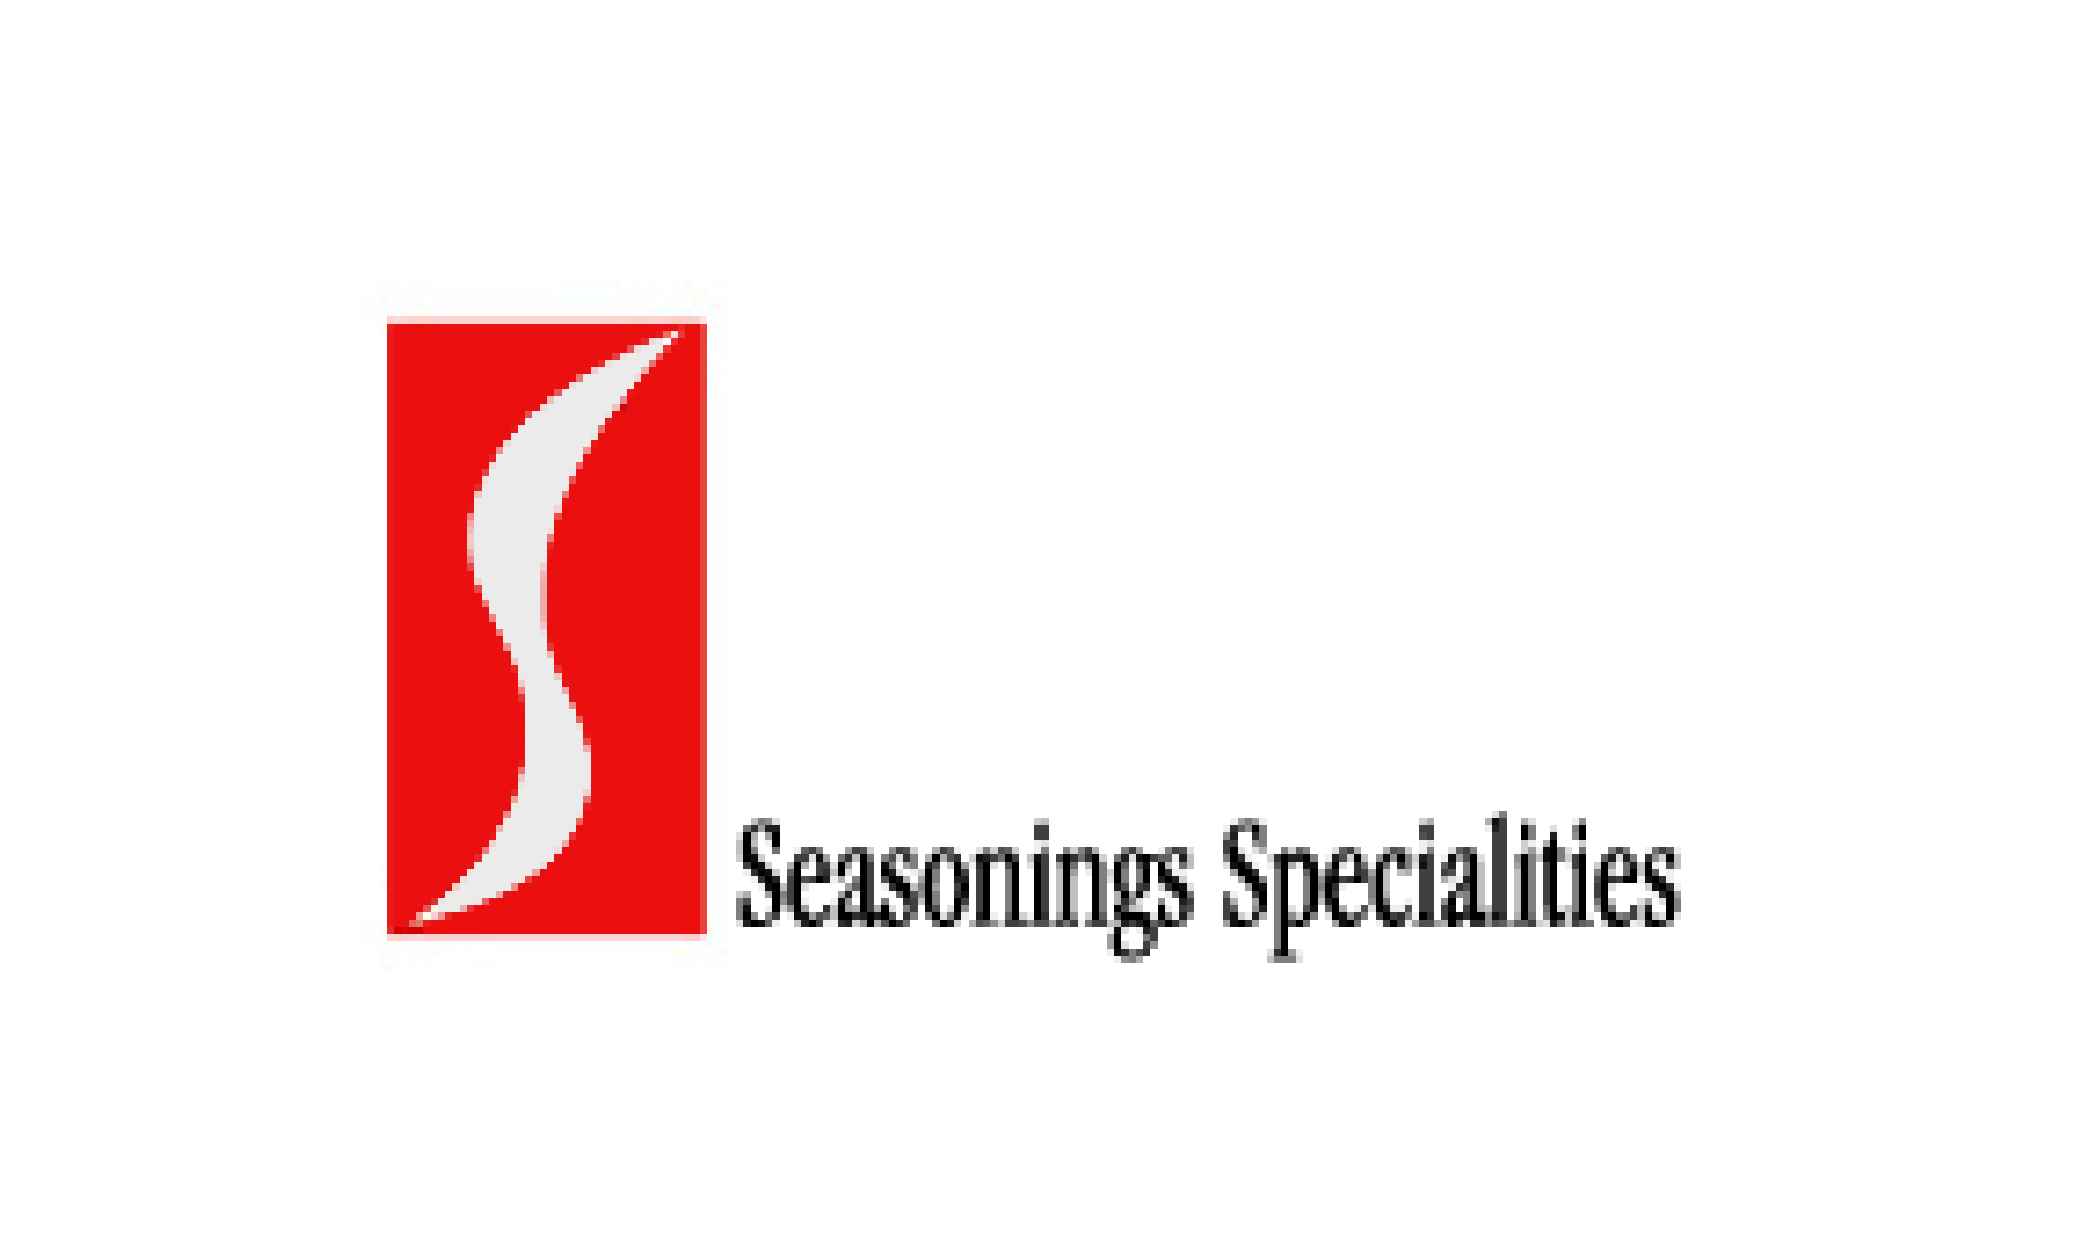 Seasoning Specialities